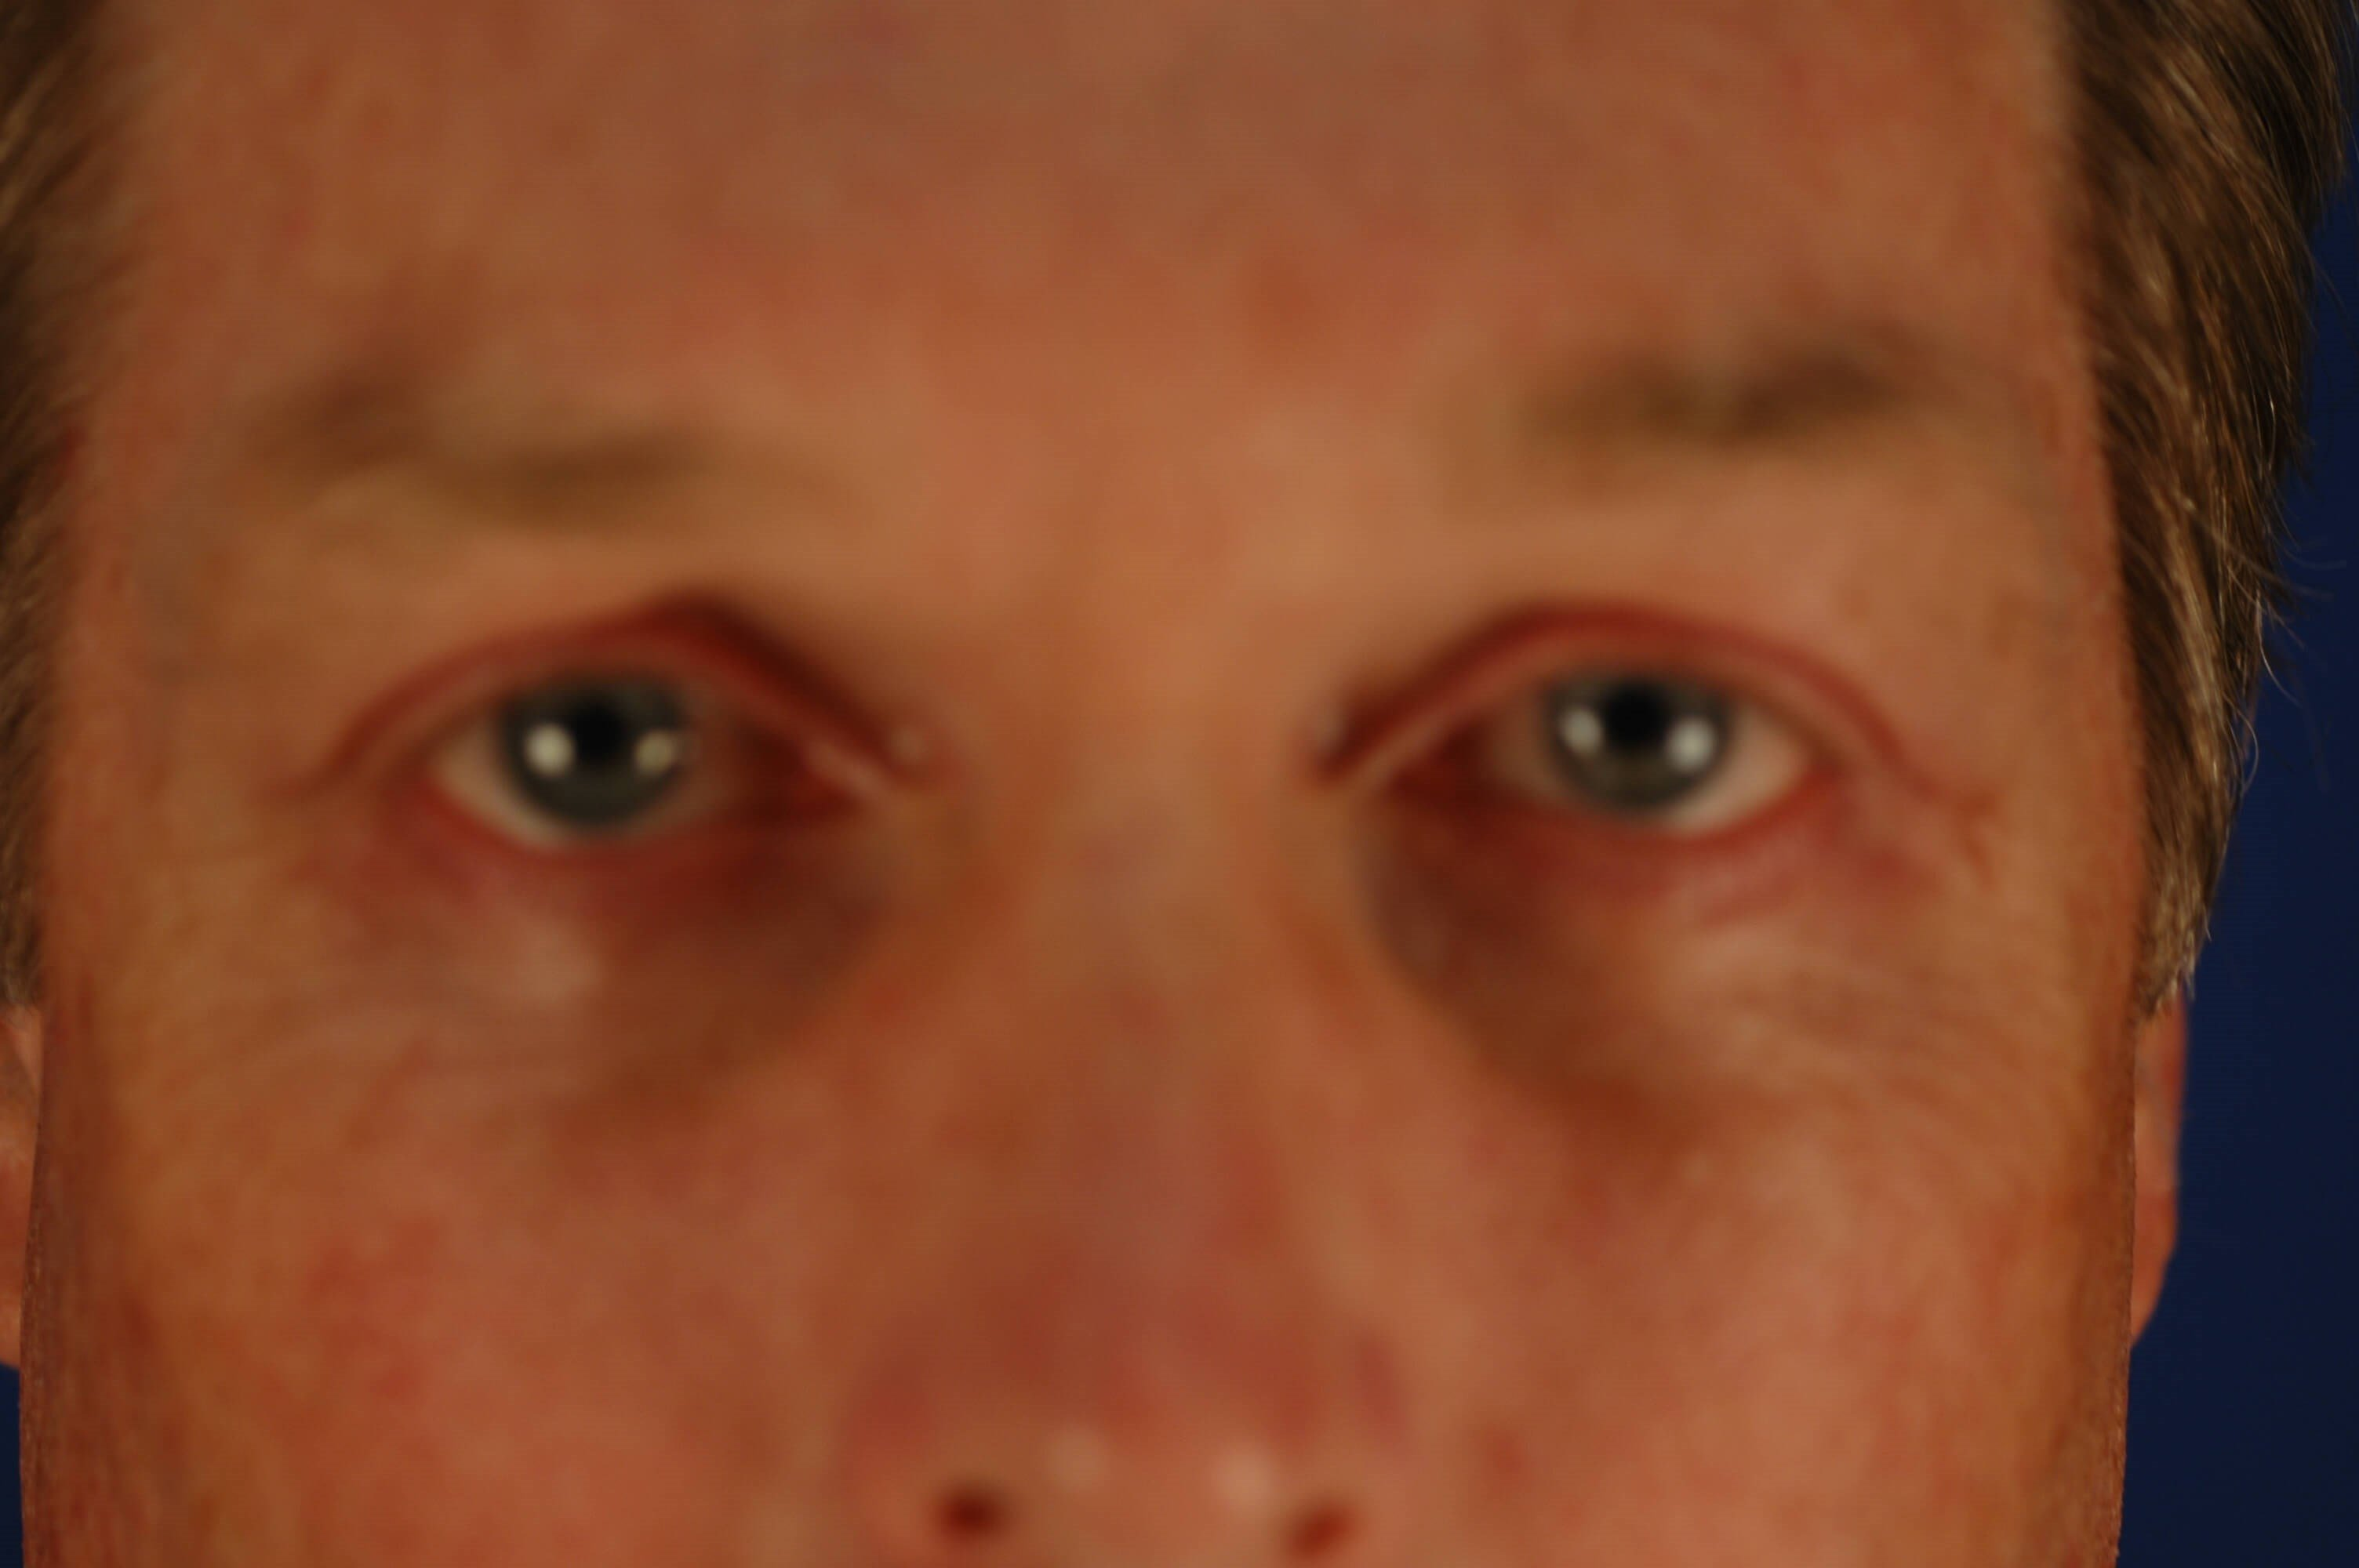 Newport Beach Blepharoplasty After Front View